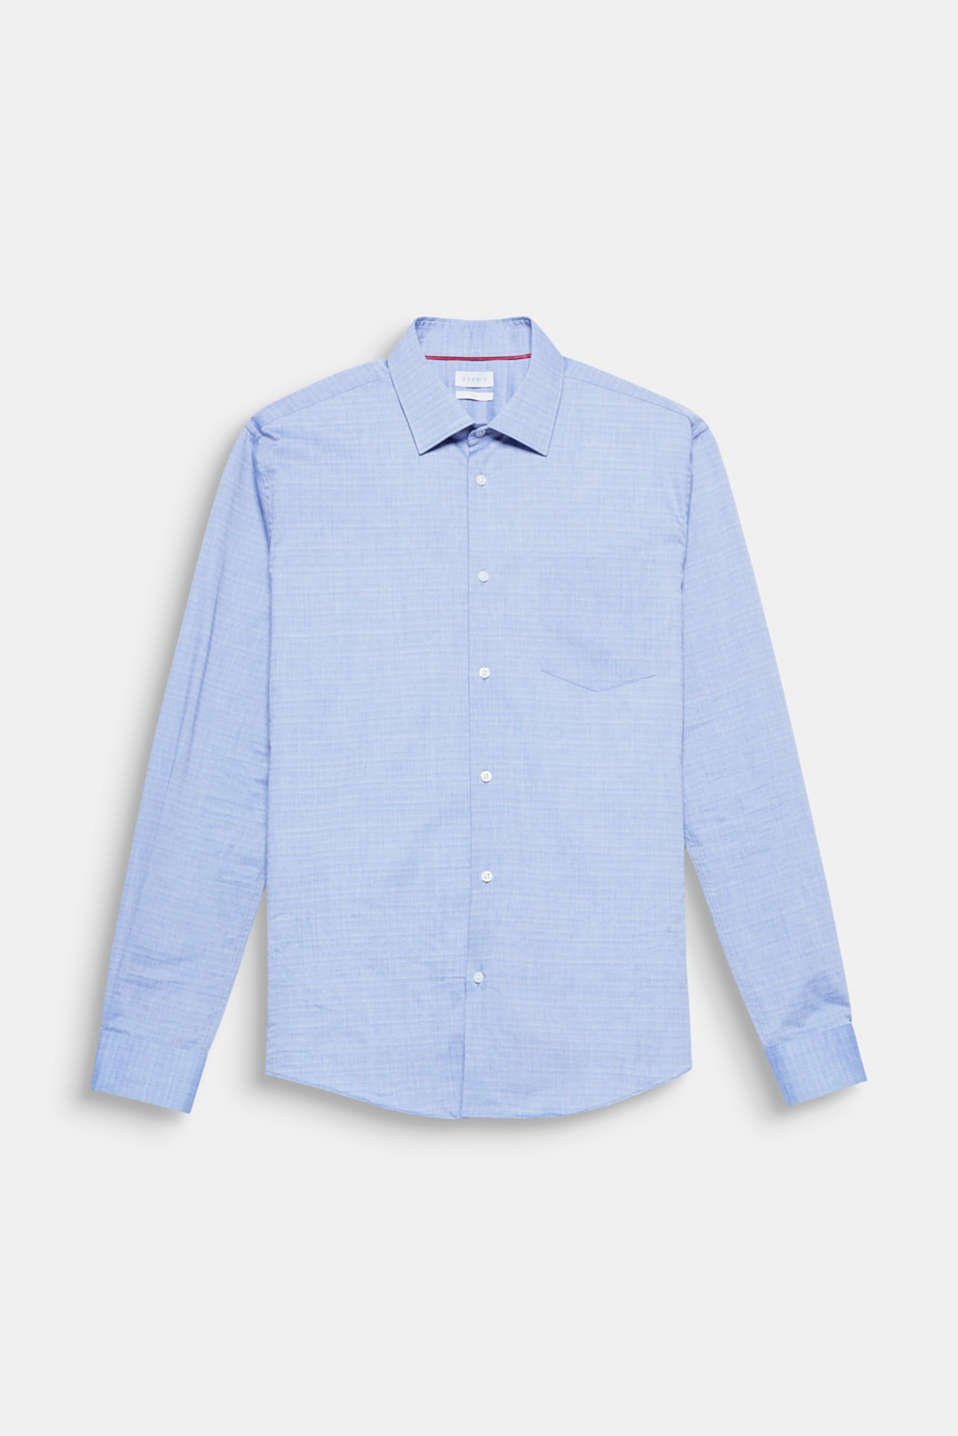 Suit up! The fine slub texture and easy-iron cotton fabric make this shirt look seriously smart.